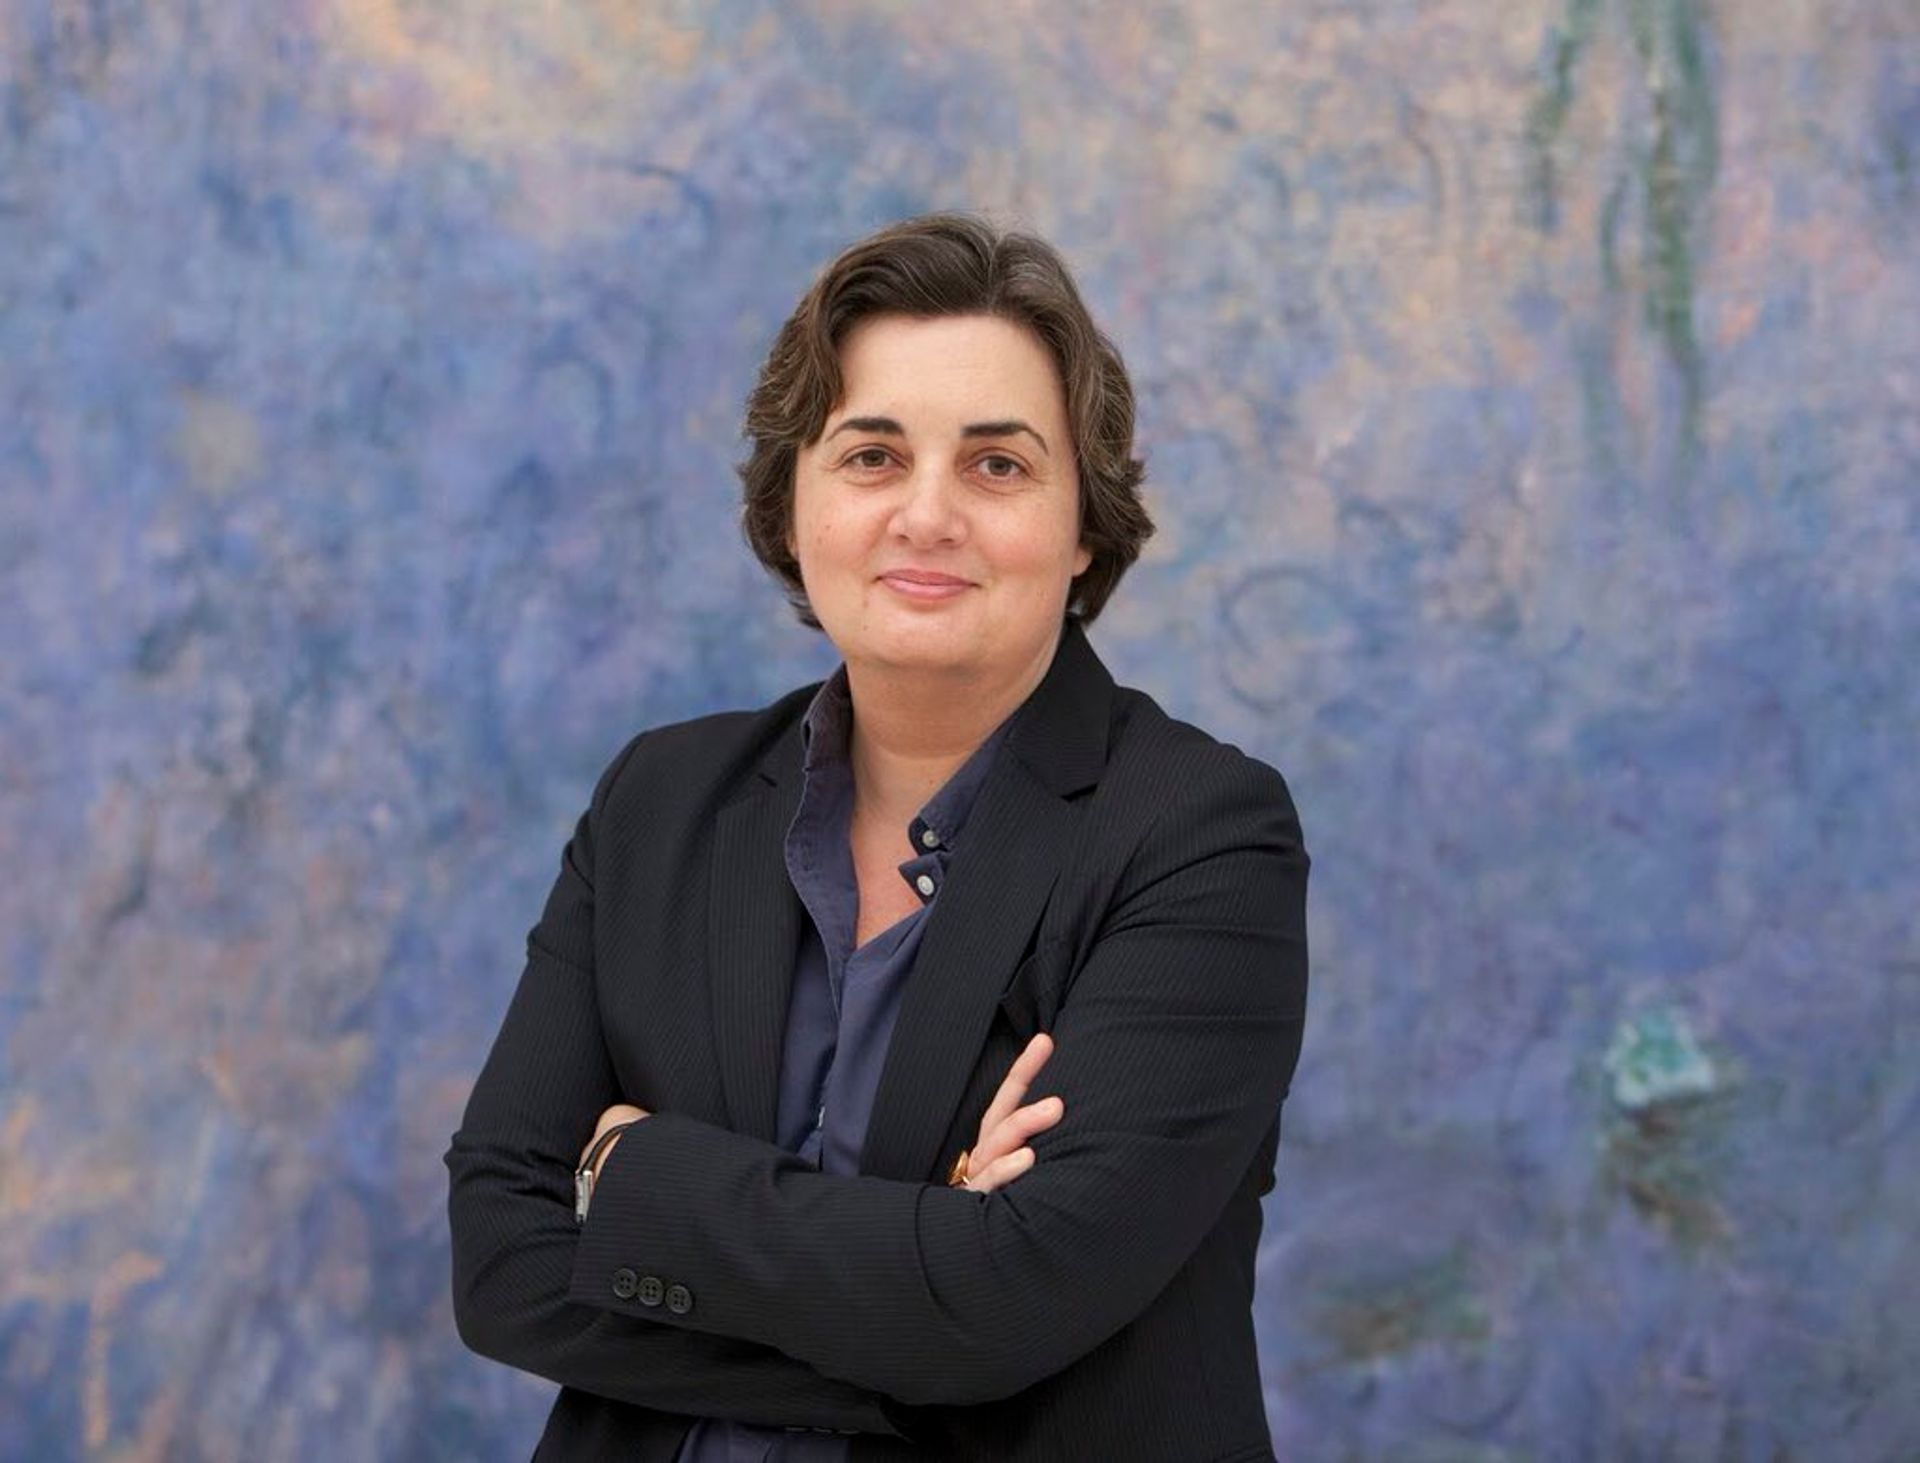 Laurence des Cars has been named by French president Emmanuel Macron as the new president-director of the Musée du Louvre © Sophie Boegly